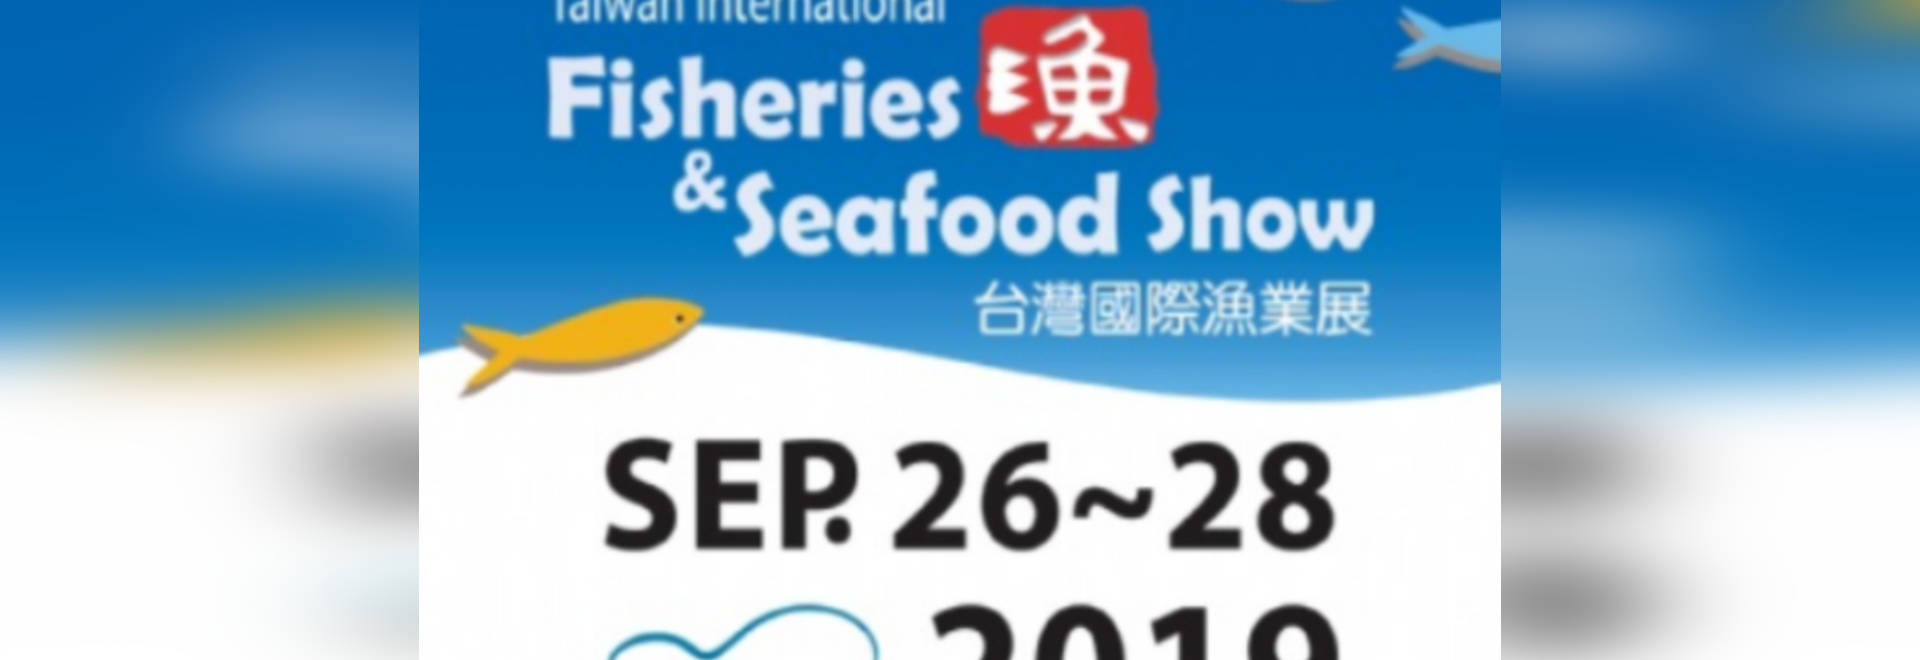 The Taiwan International Fisheries and Seafood Show is due to take place very soon!